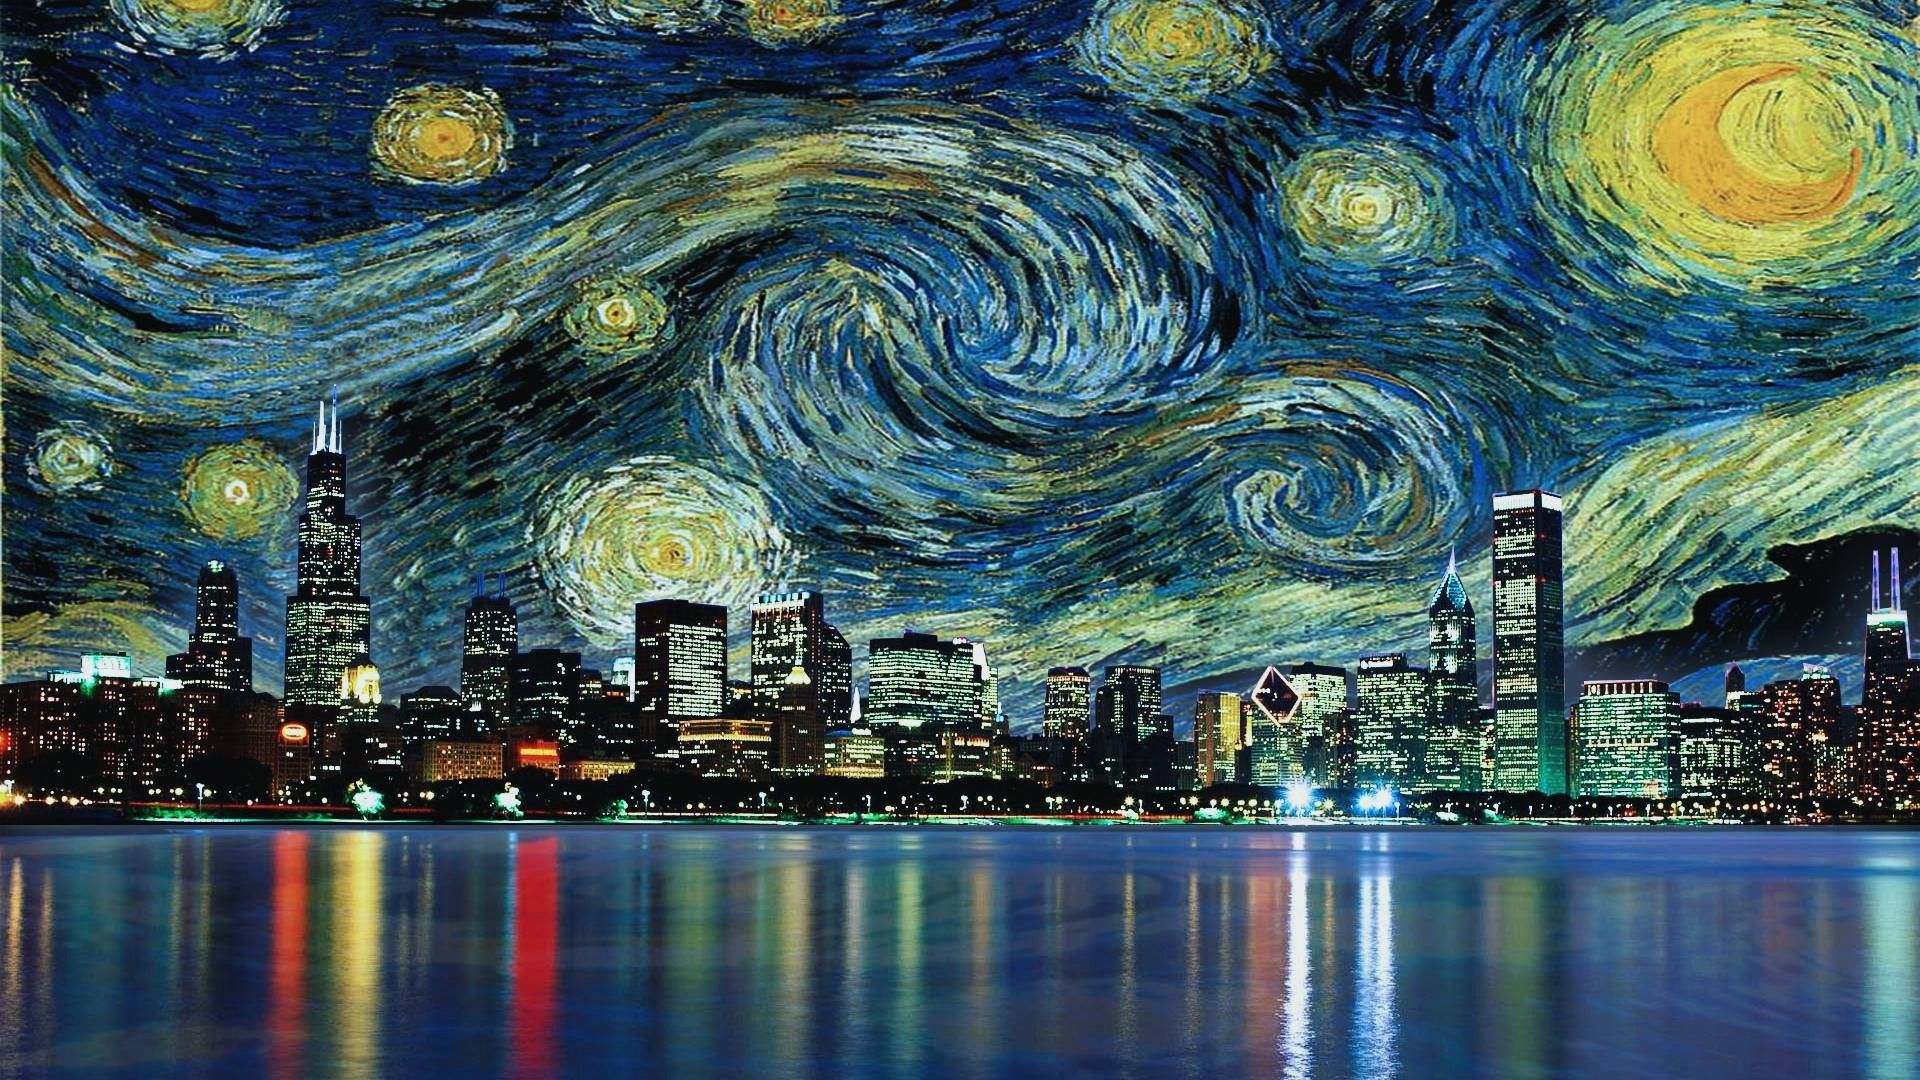 Vincent Van Gogh The Starry Night Wide Wallpaper Hd Wallpapers 1920x1080 Px 616 26 Kb Starry Night Van Gogh Starry Night Wallpaper Gogh The Starry Night